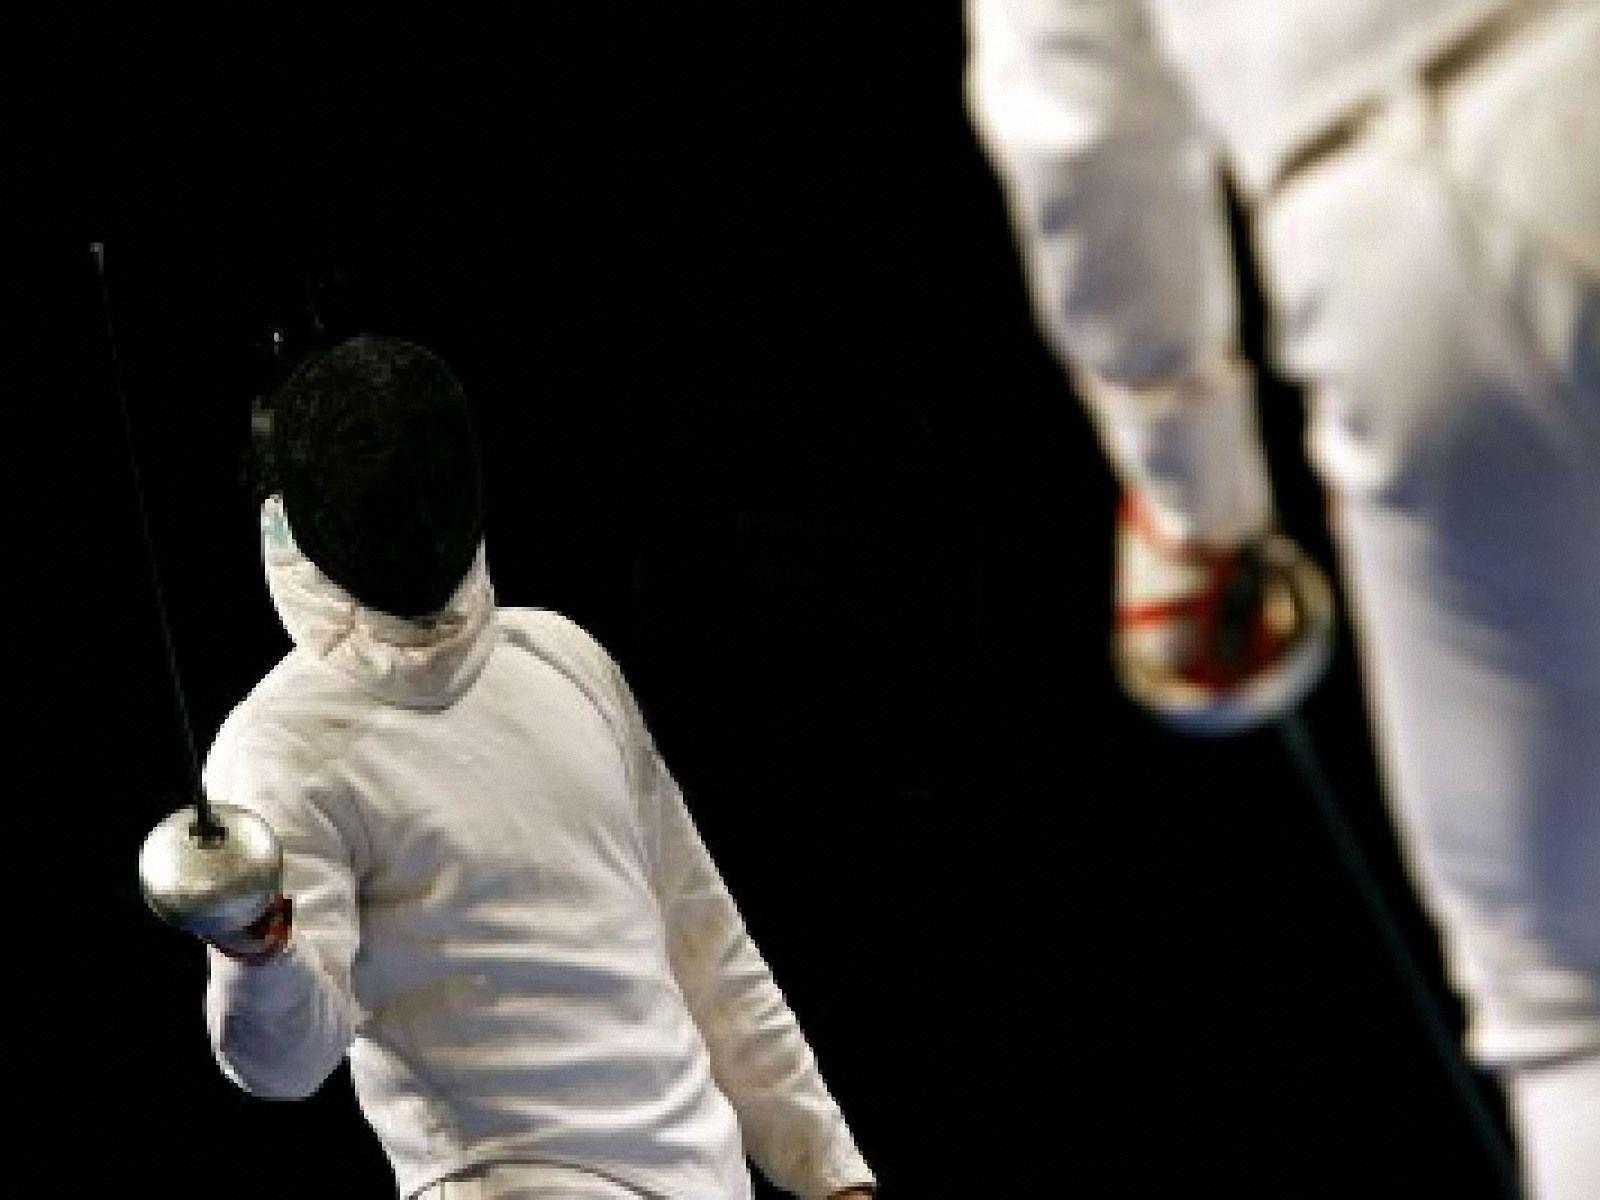 HD Wallpapers Fencing - Fencing En garde | Escrime - Fencing ...